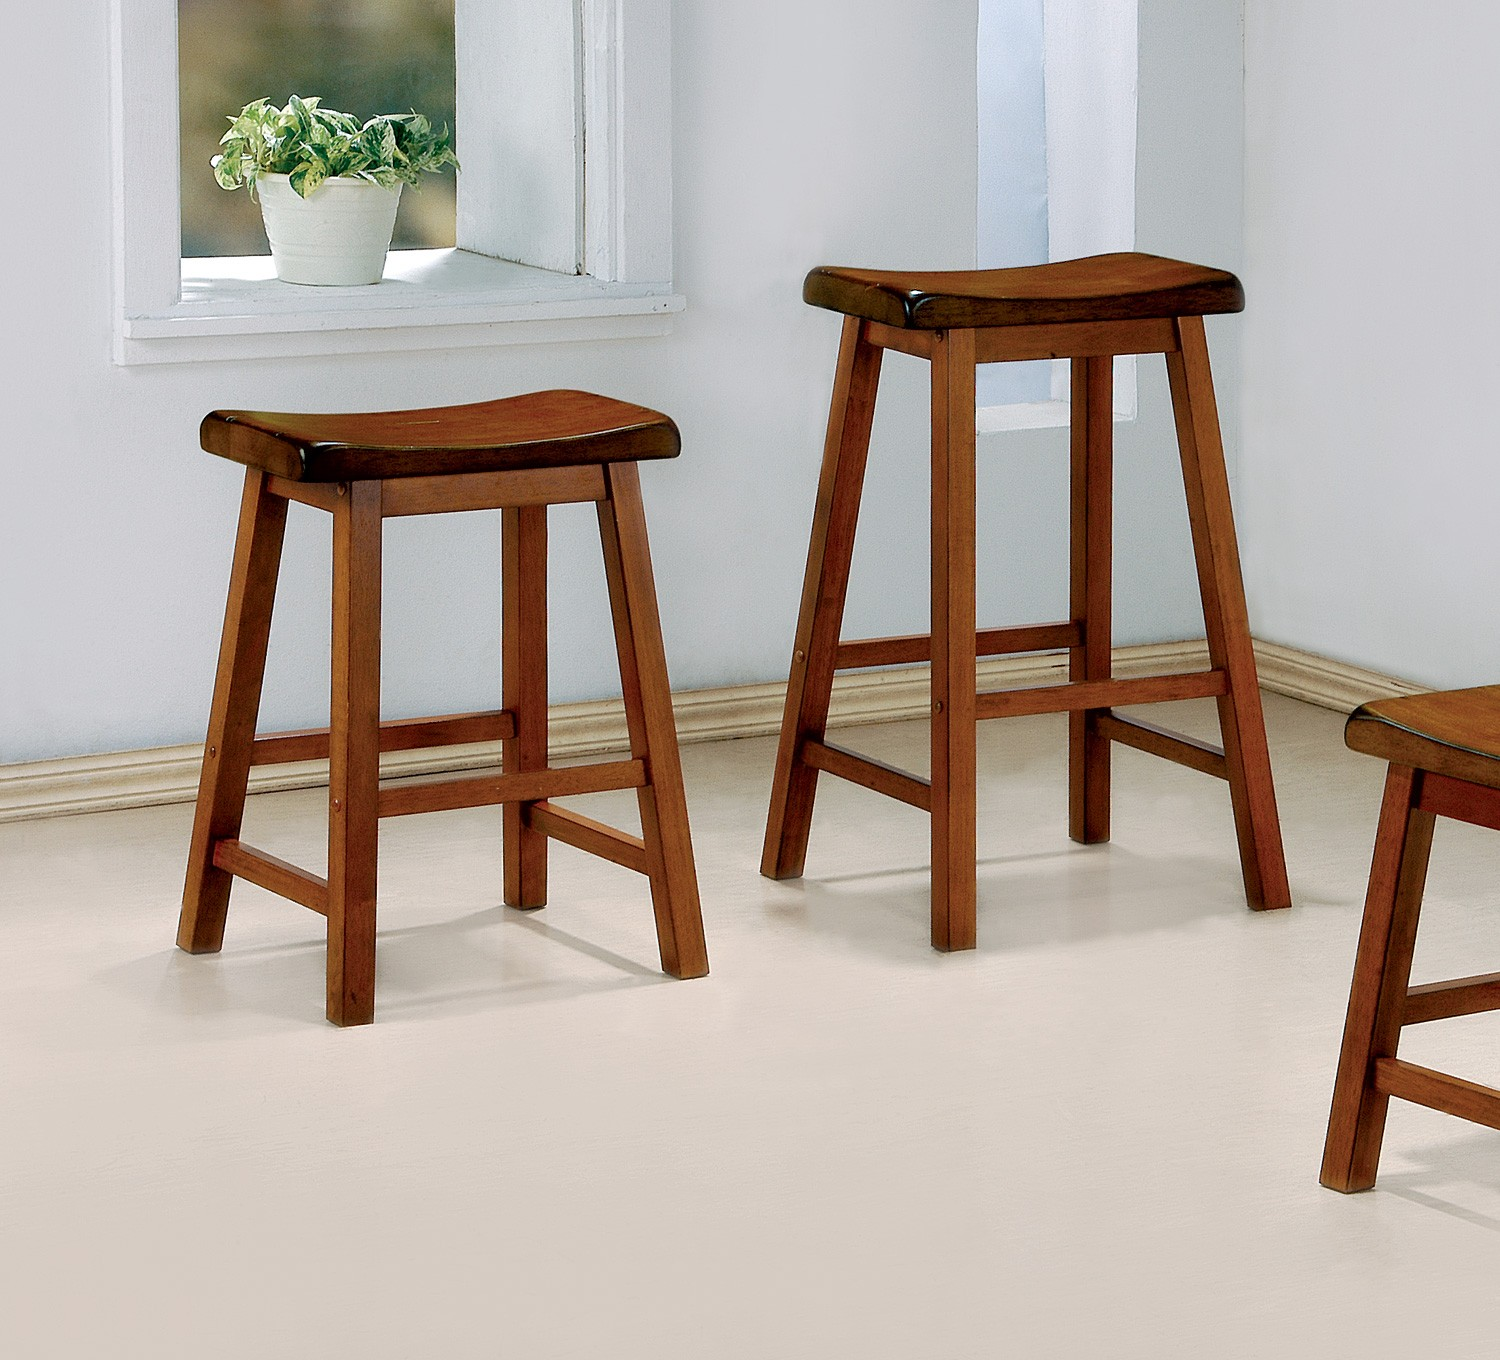 Image of: bar stool chairs brown color